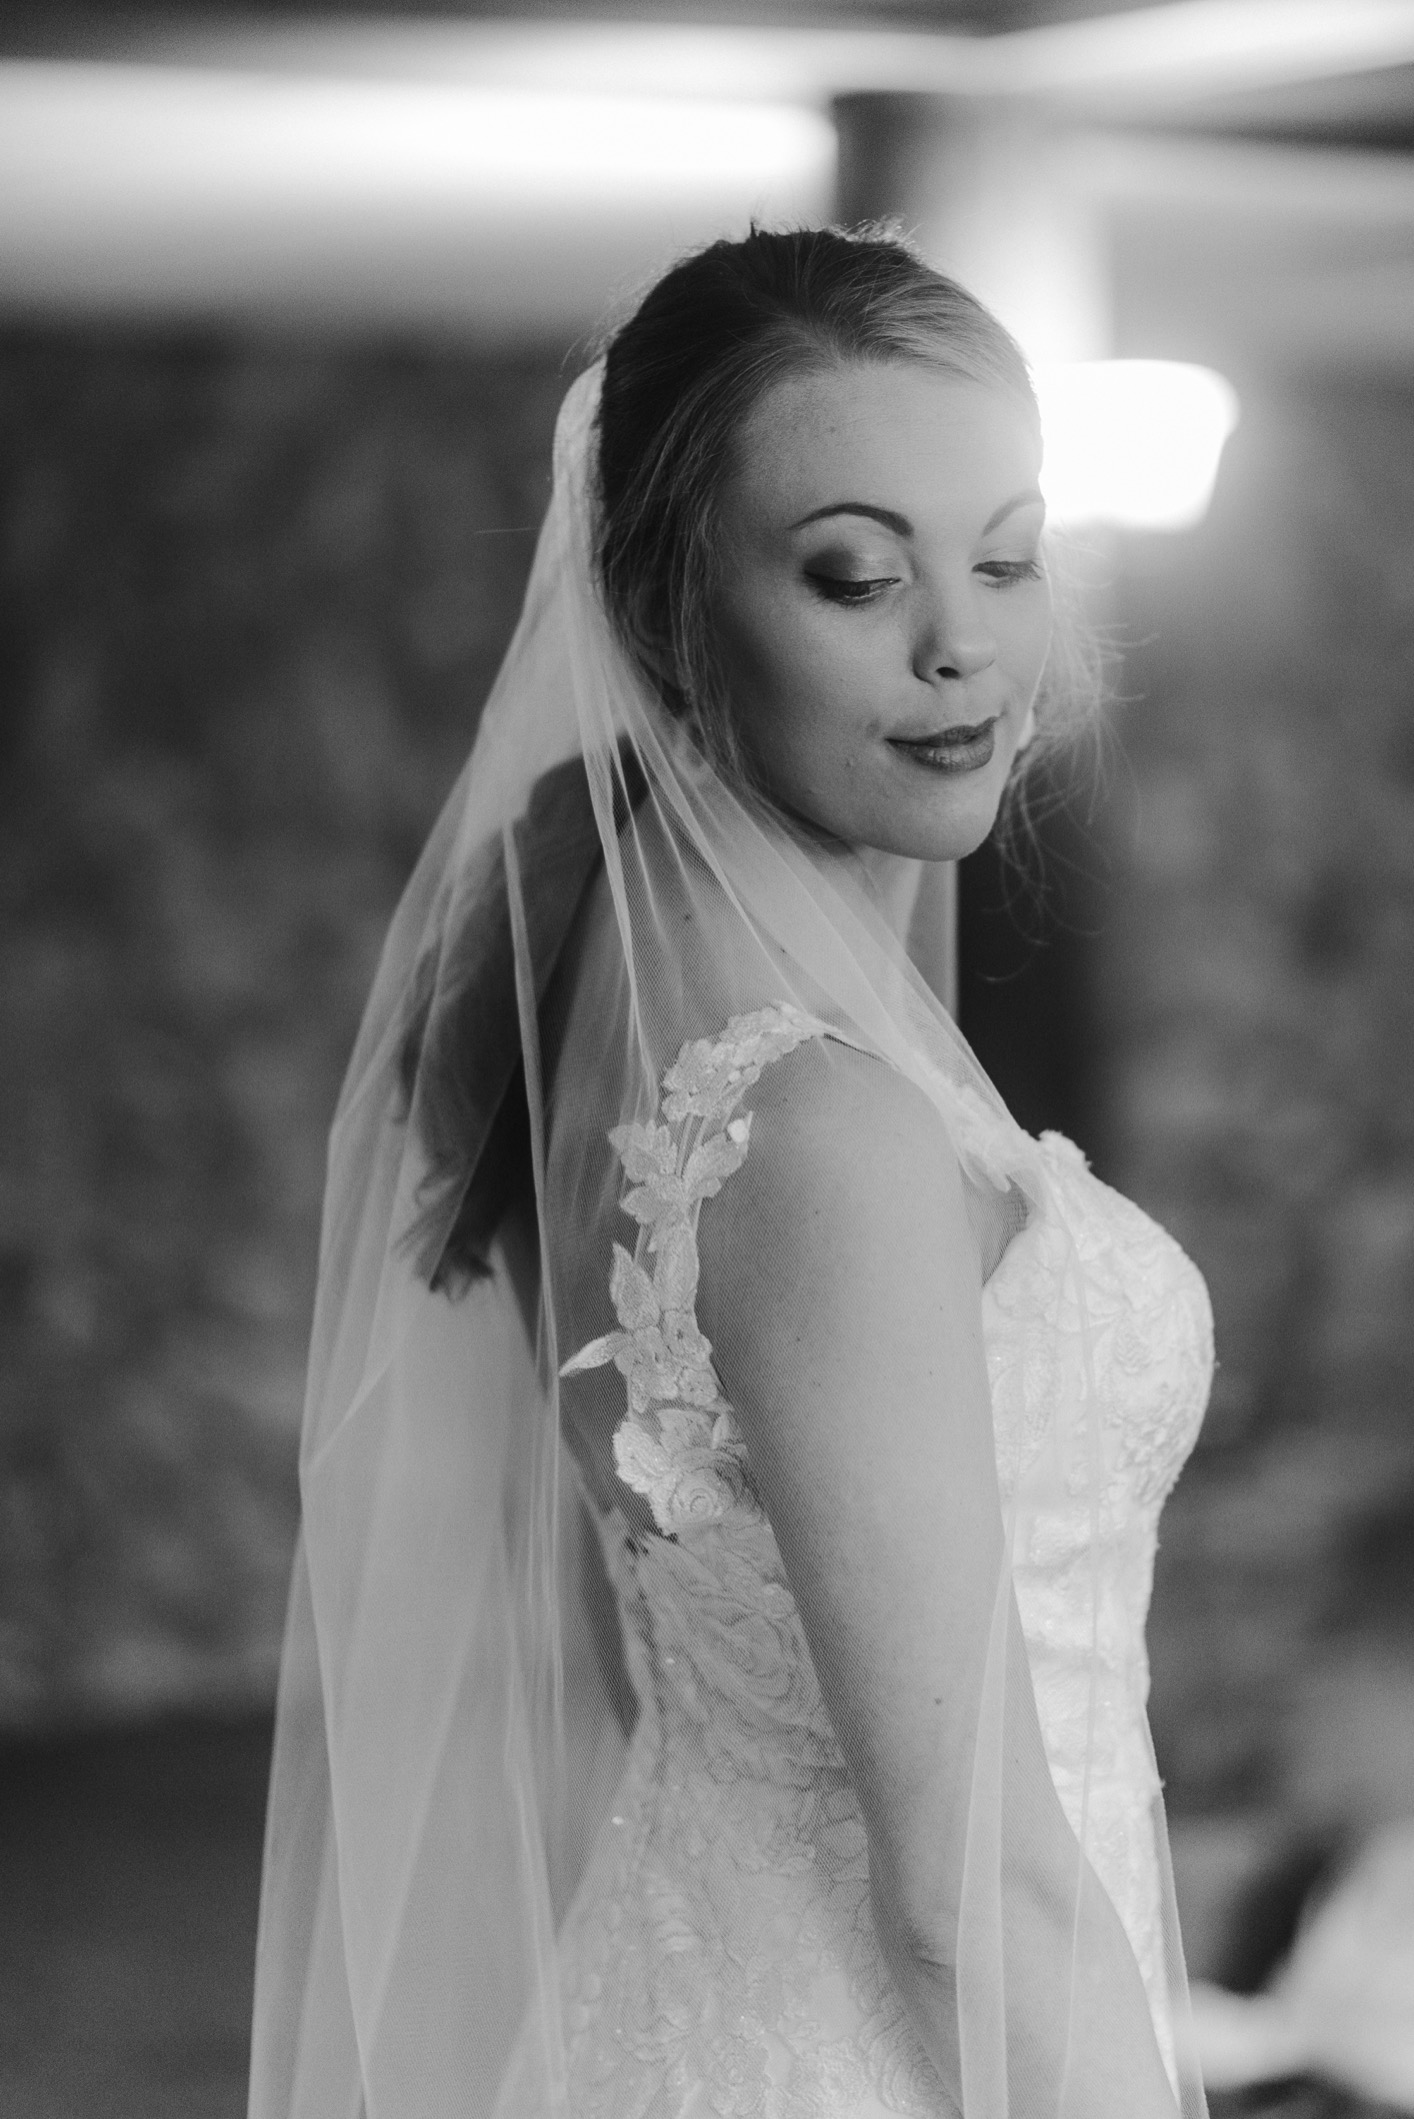 019_Weddings_Bride_Wedding_Photography_Photographers_Atlanta_Georgia_Portraits.jpg